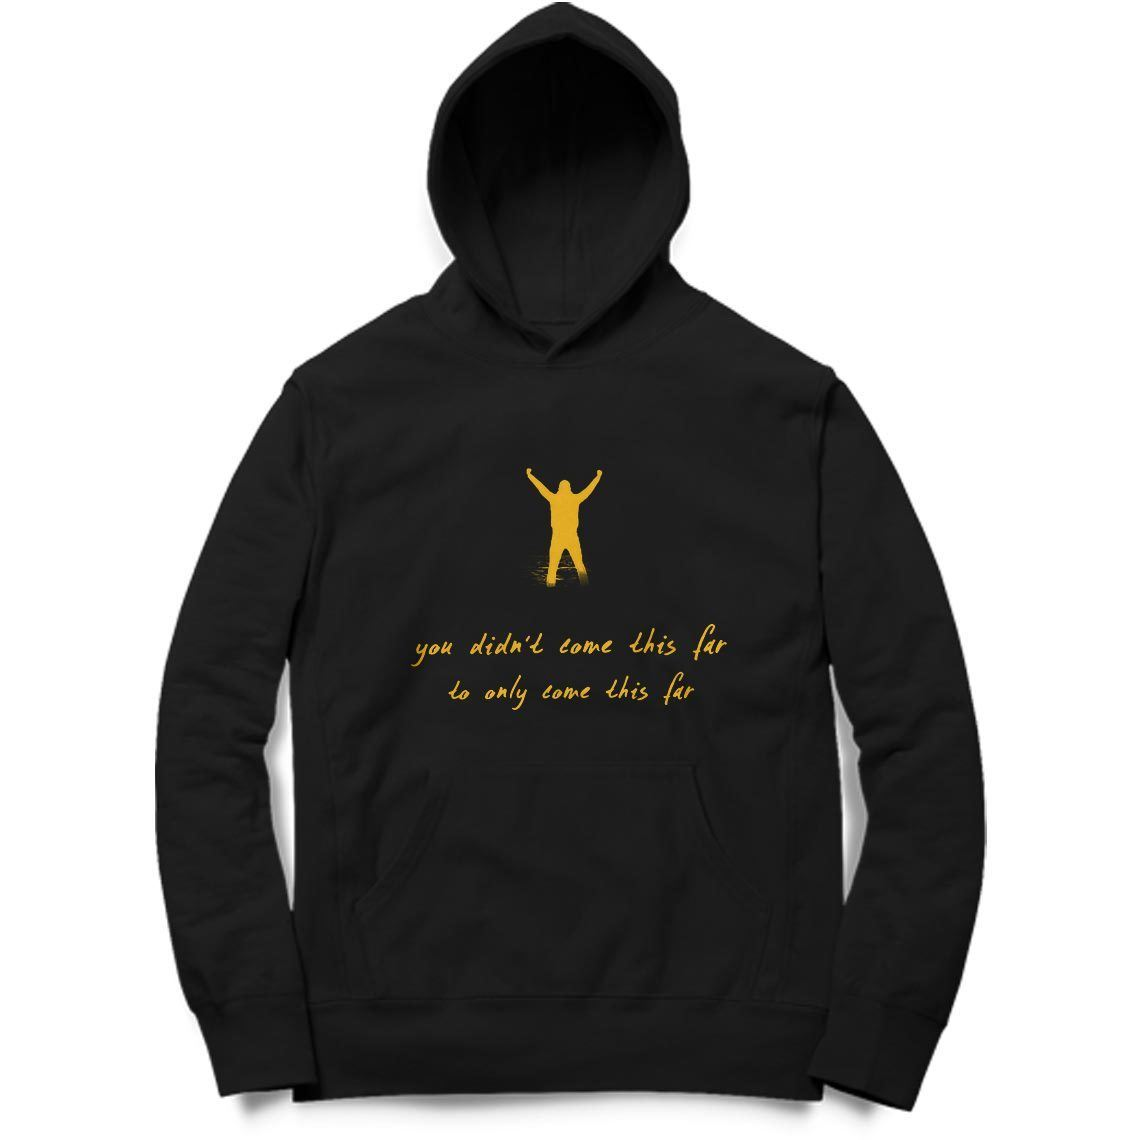 Come this far! Clothing Printrove Black S